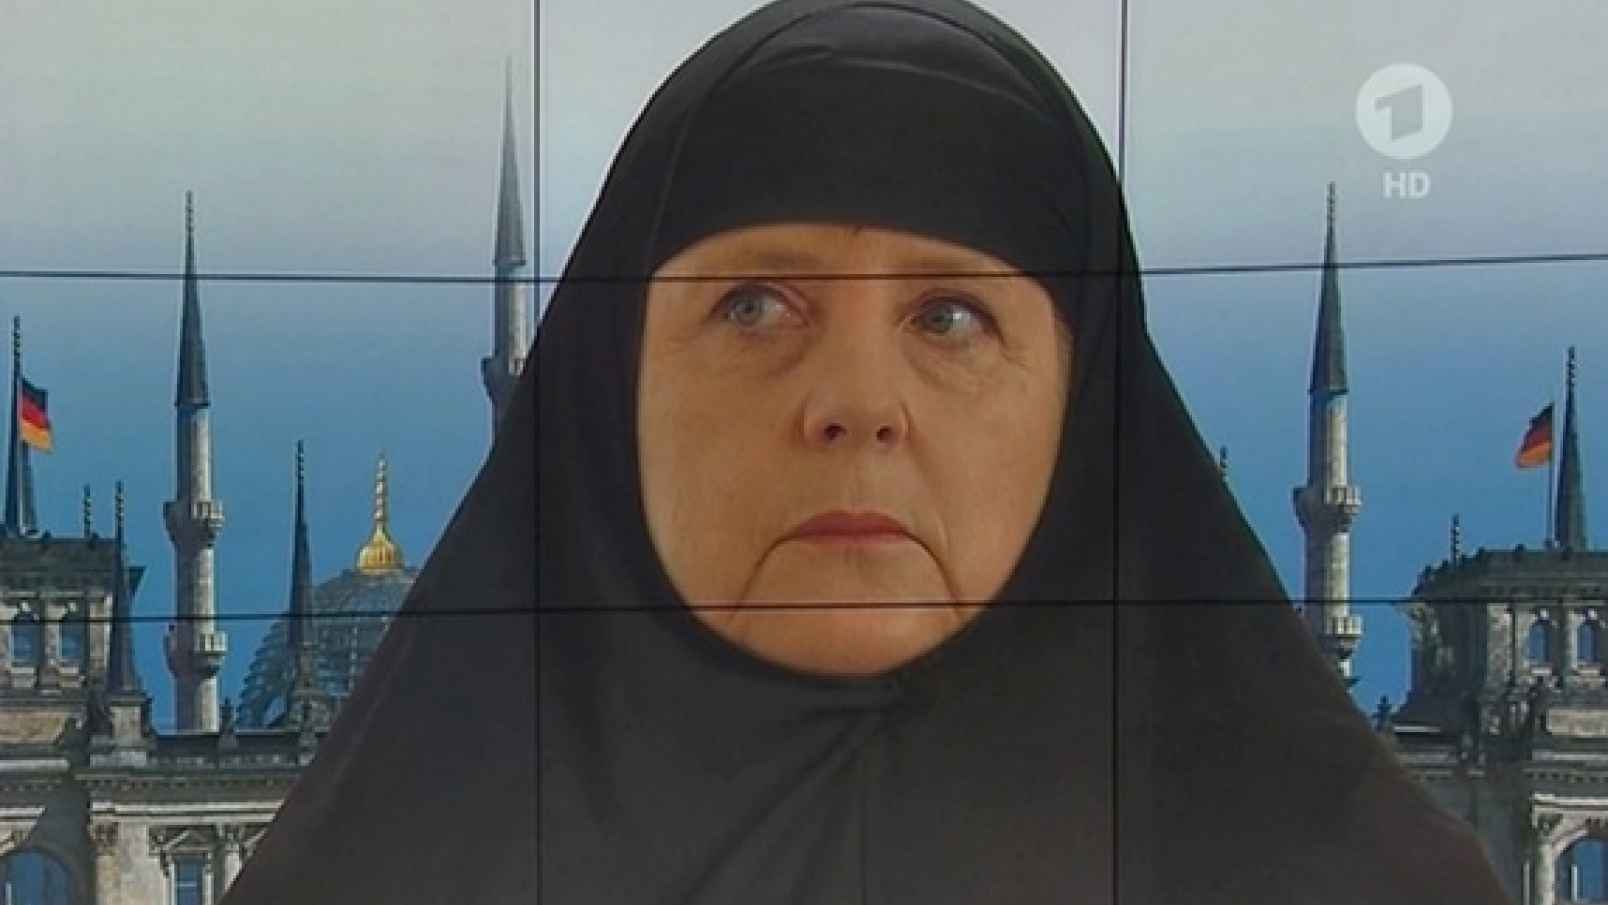 Two faces of German Chancellor Merkel